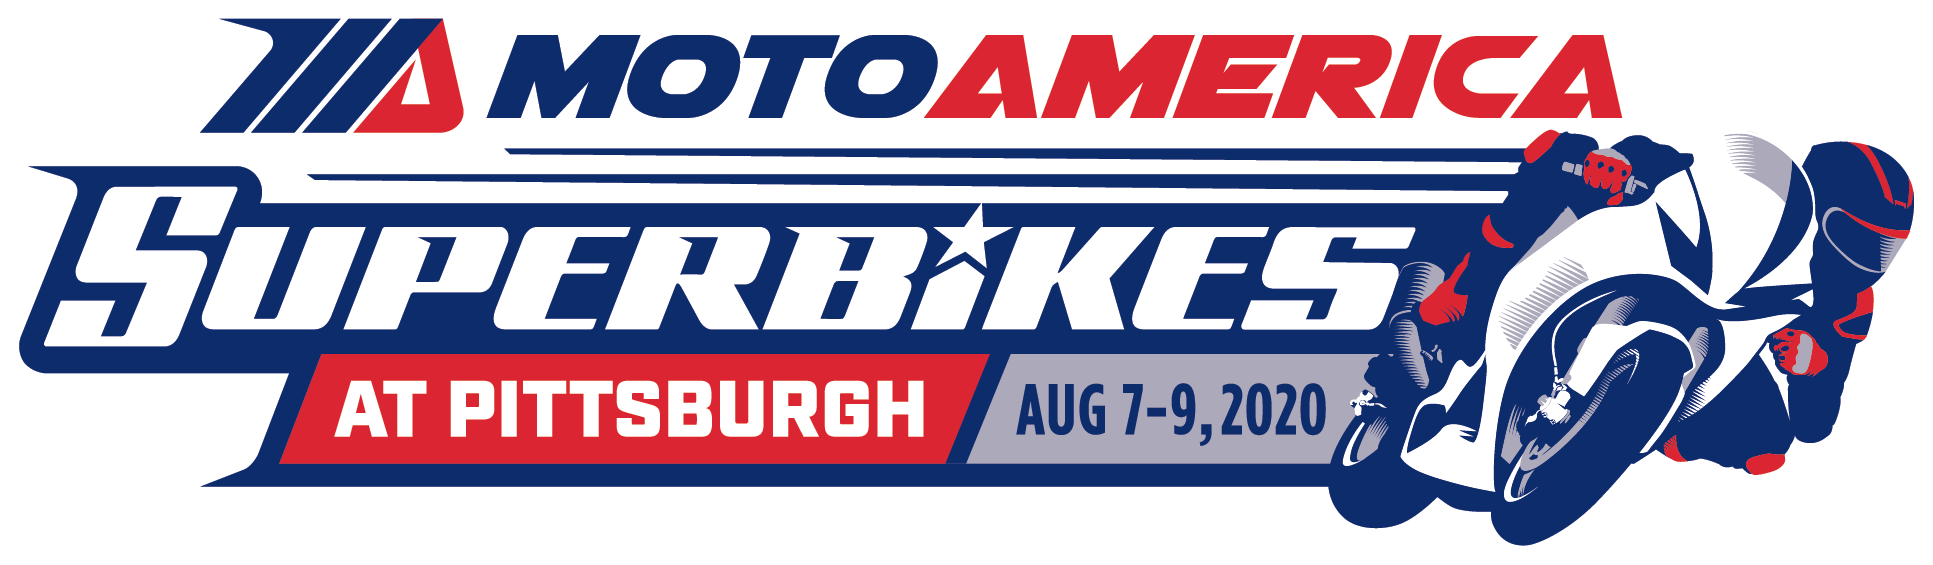 MotoAmerica Superbikes at Pittsburgh- August 7-9, 2020